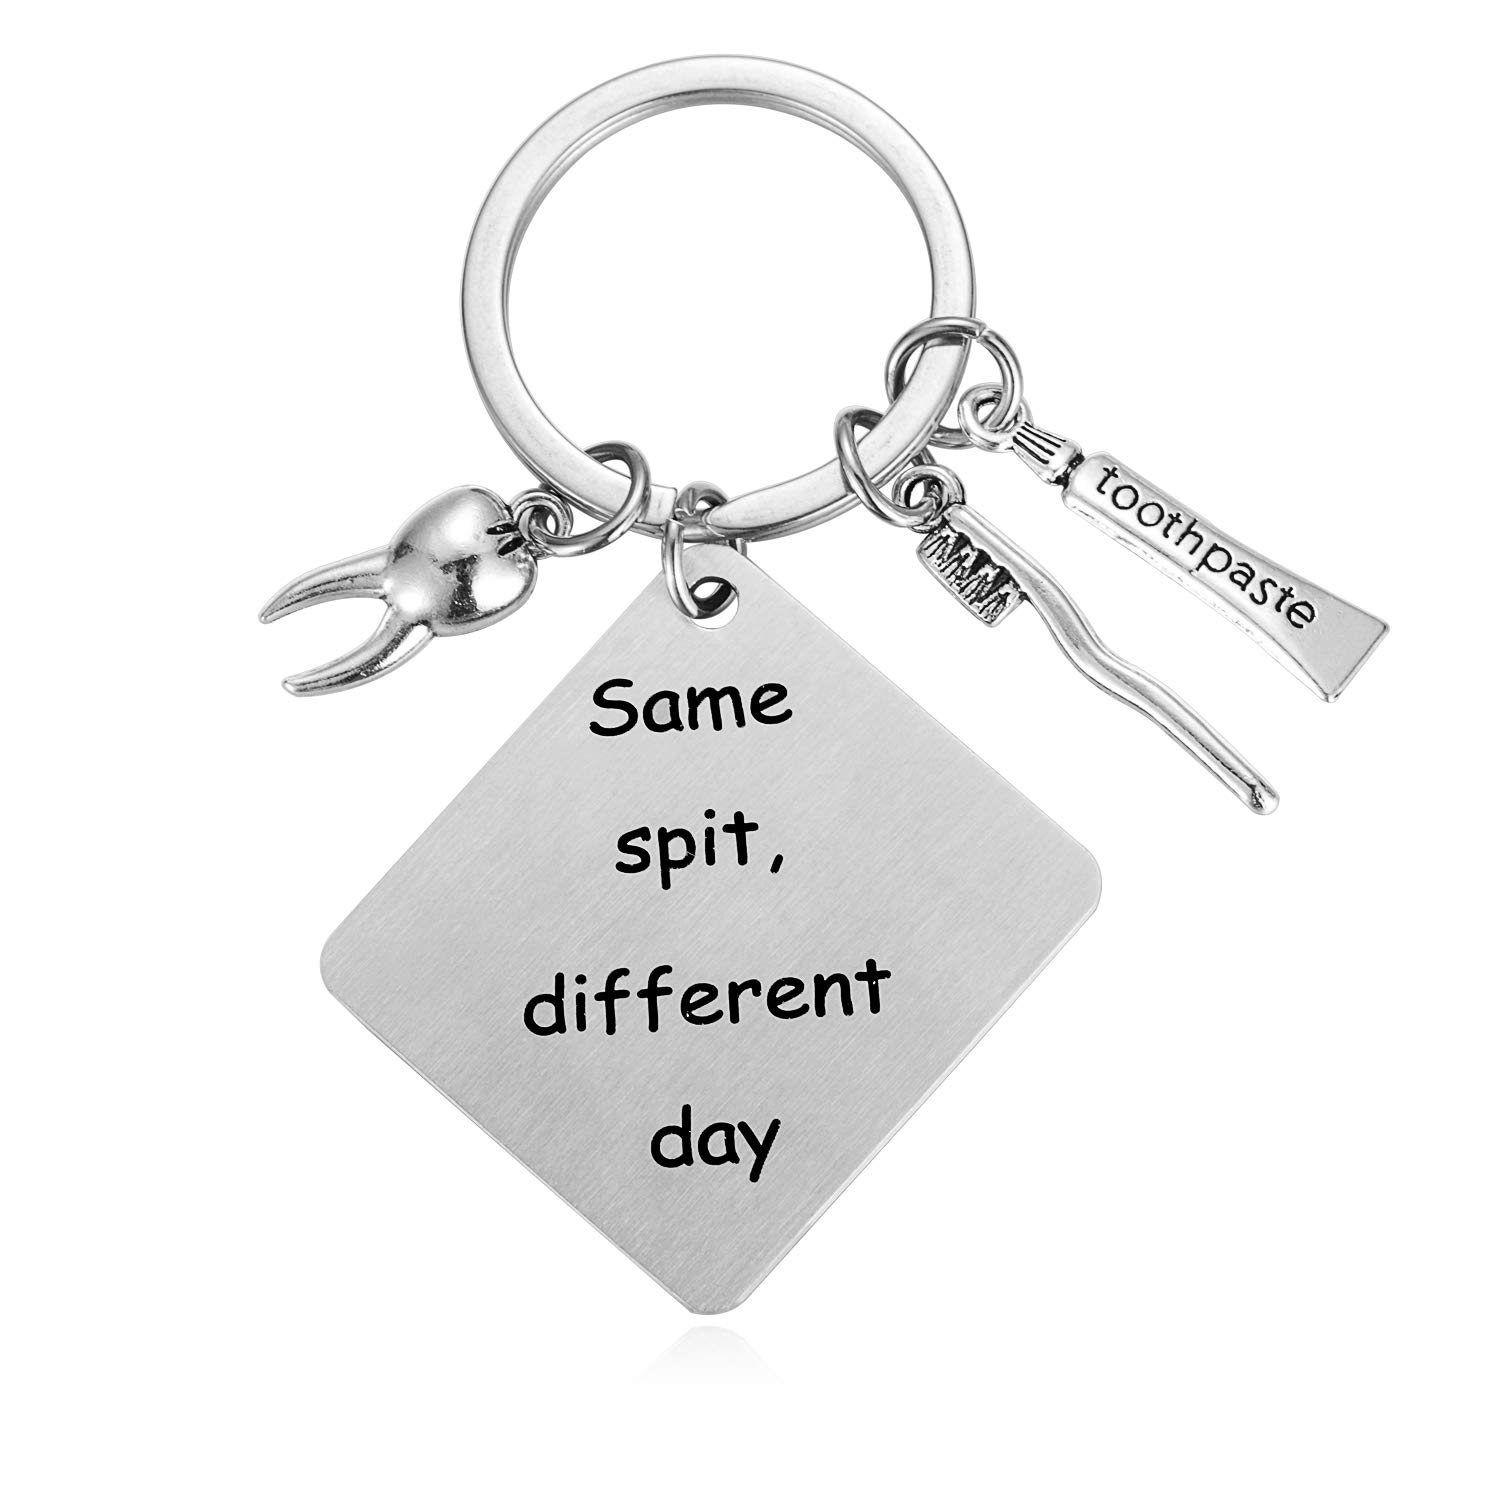 This gifts for dental hygienist is funny and functional s different day Dentist humor:Same spit Put a smile on the face of the dental assistant or dentist who make your smile more pearly white